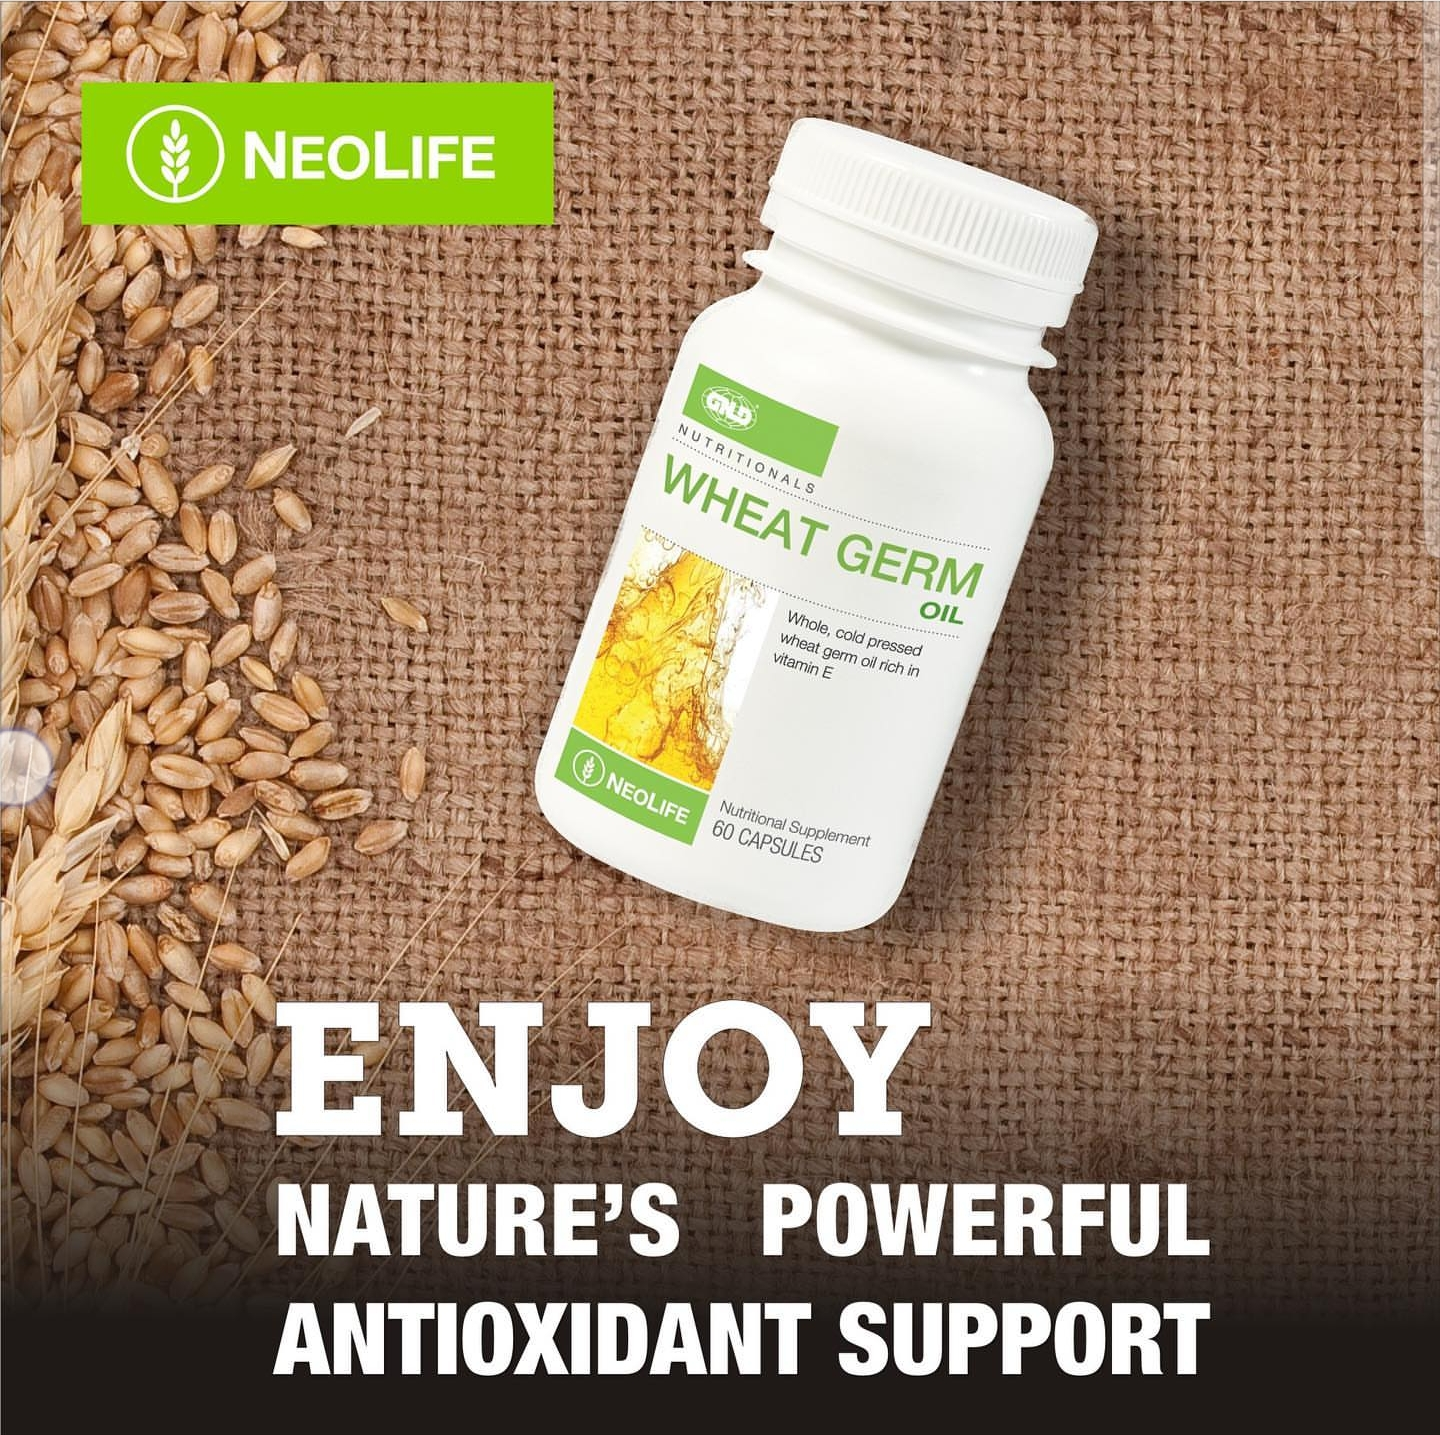 Neolife Wheat Germ Oil